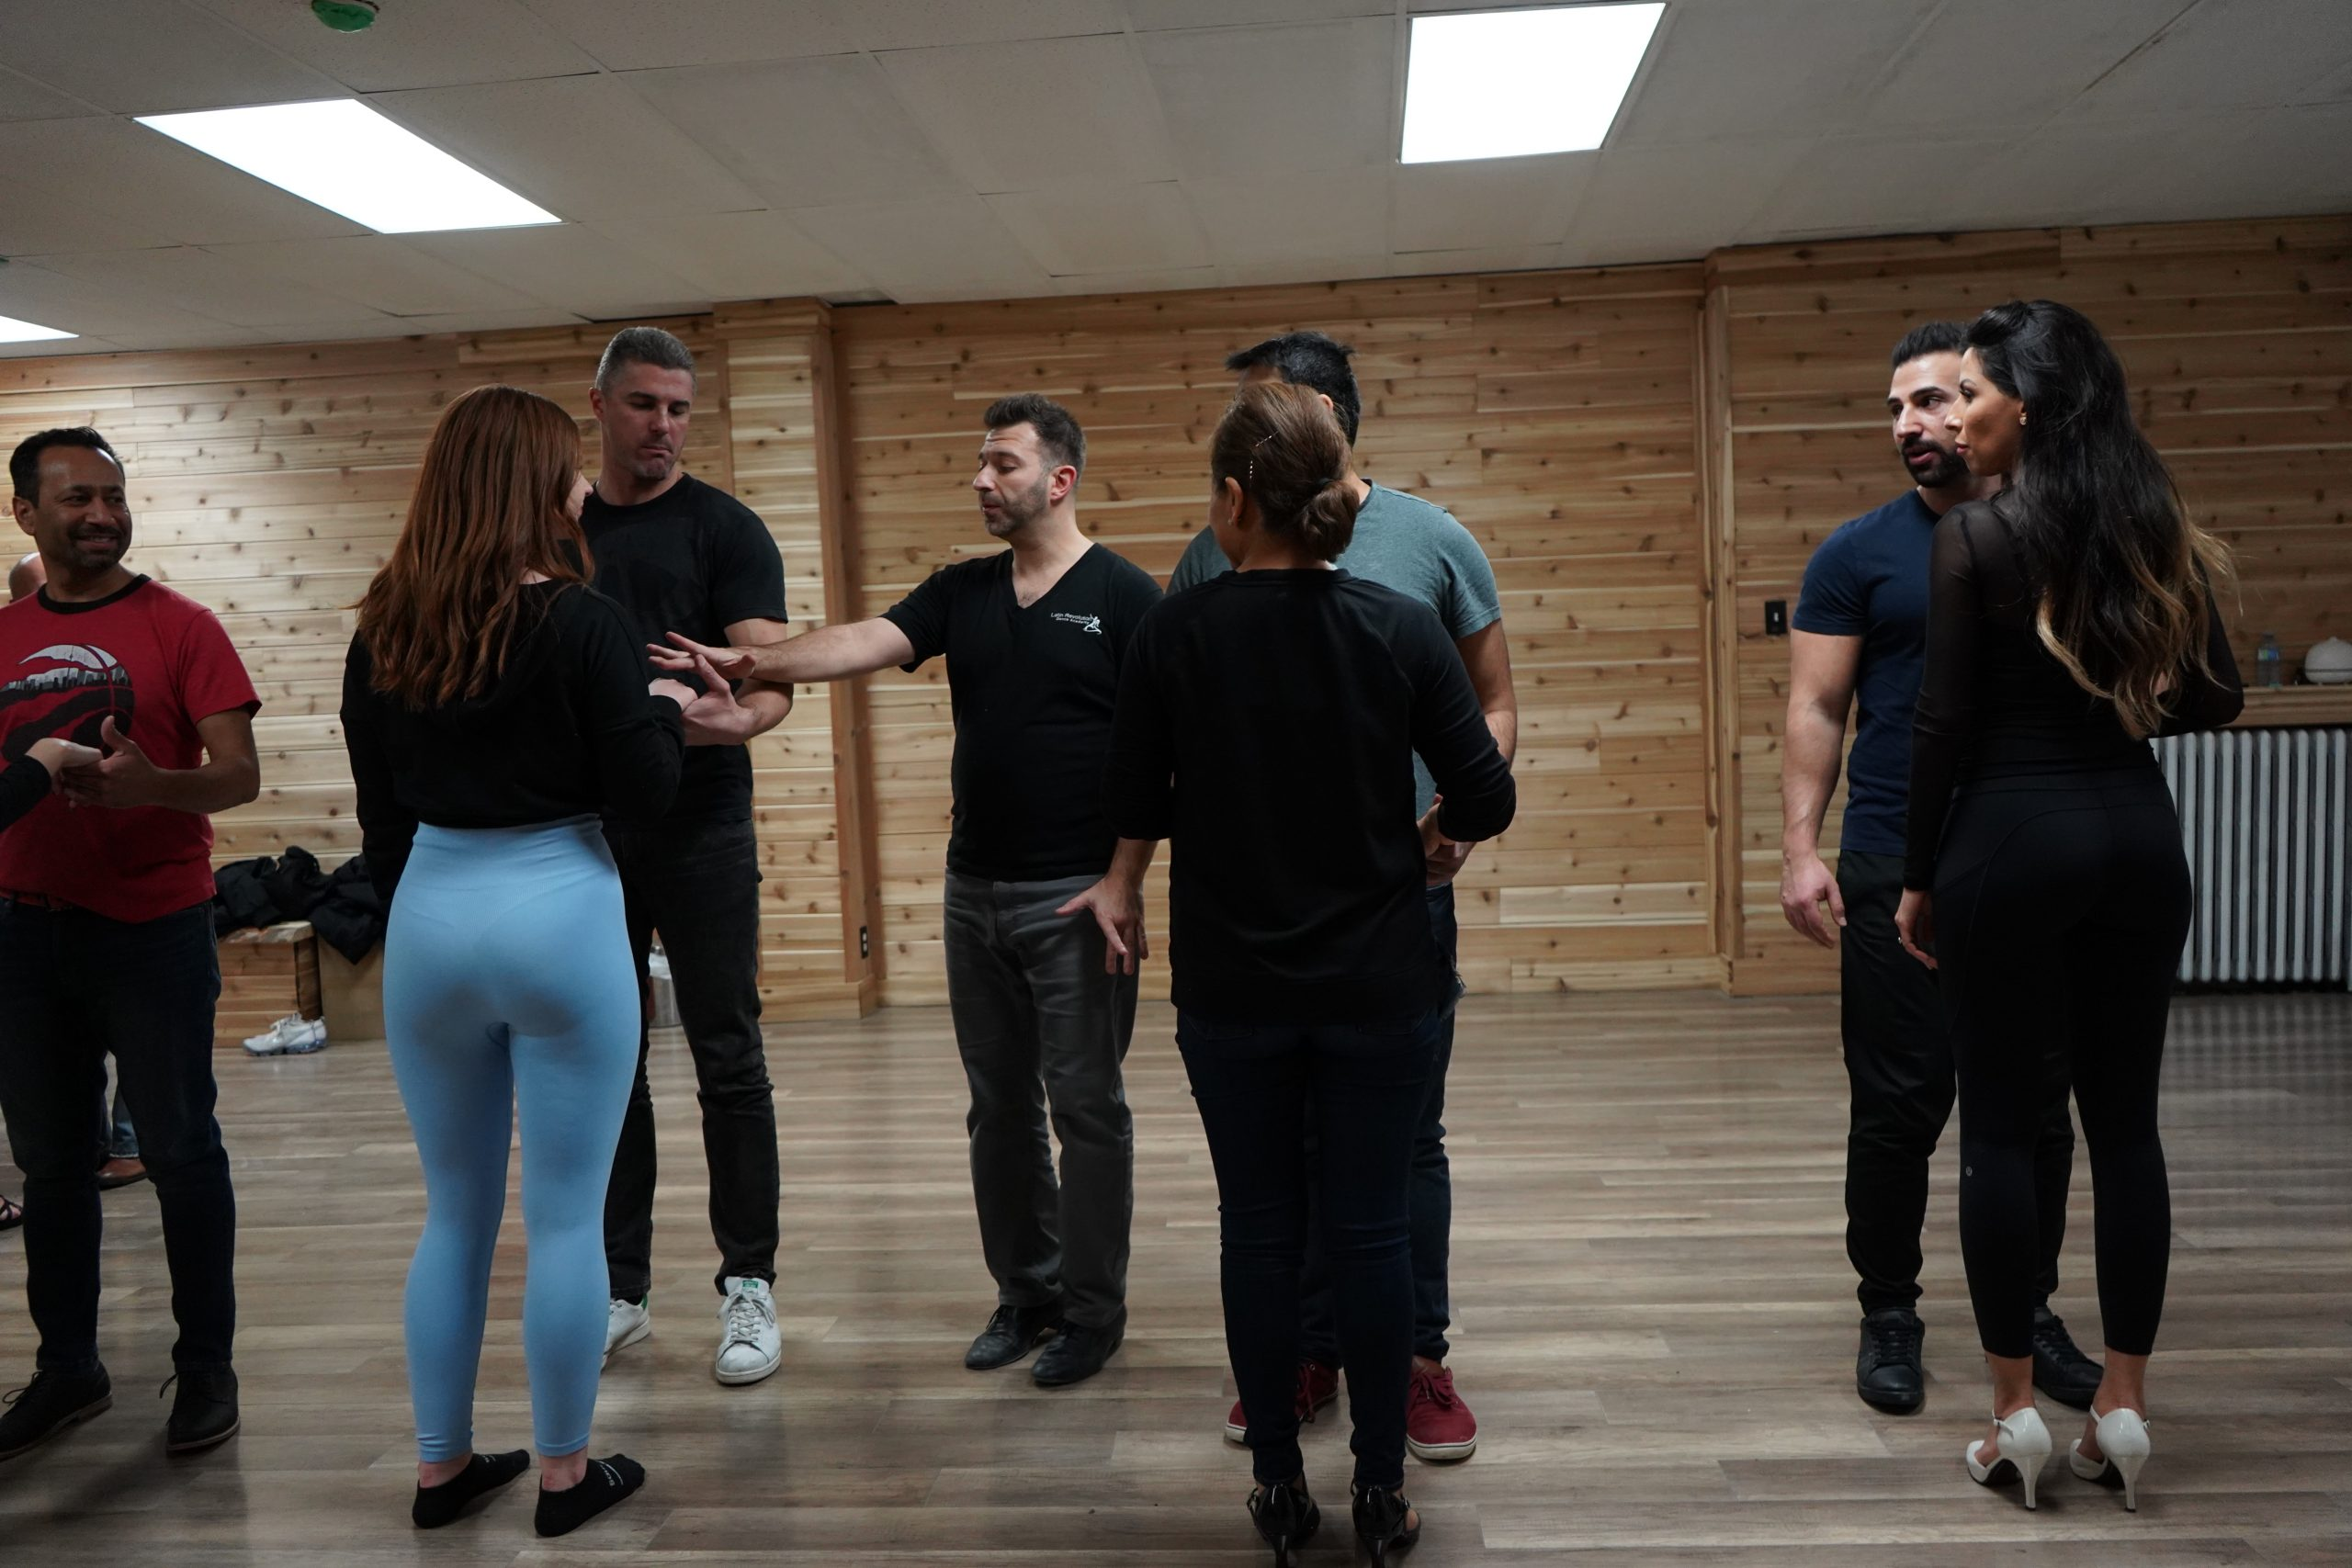 salsa dance lessons for couples near me